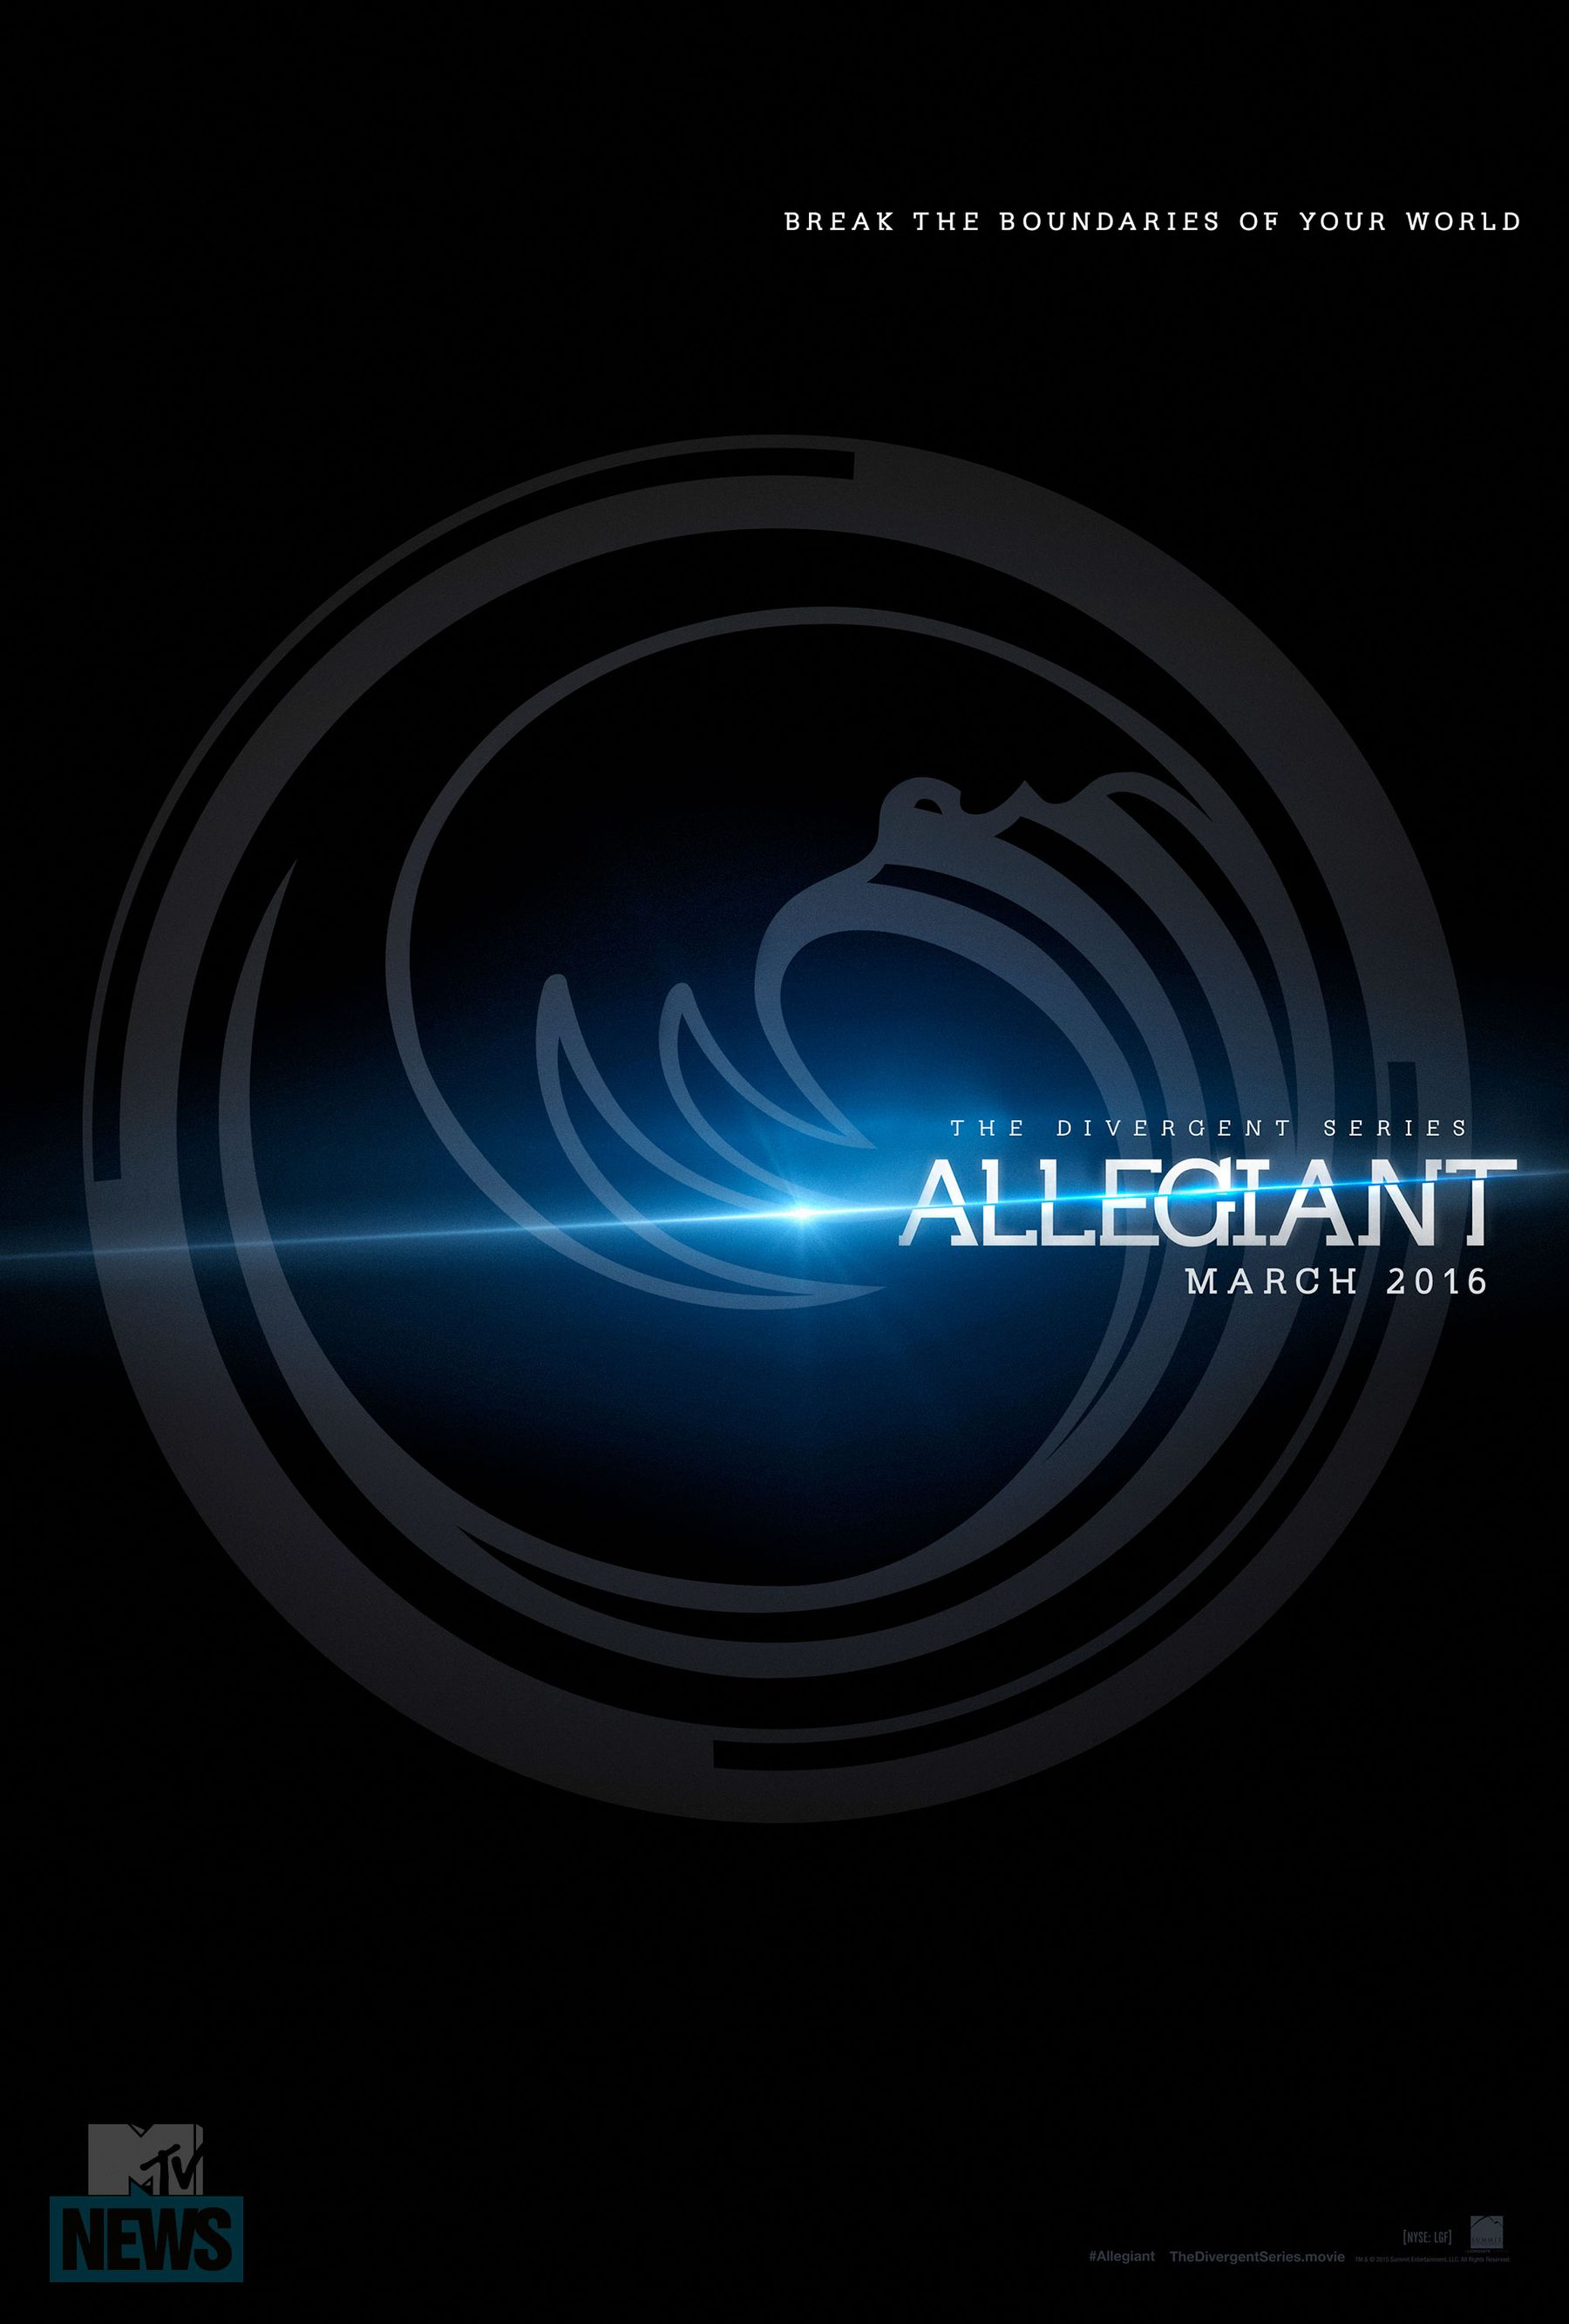 The Divergent Series; Allegiant Logo